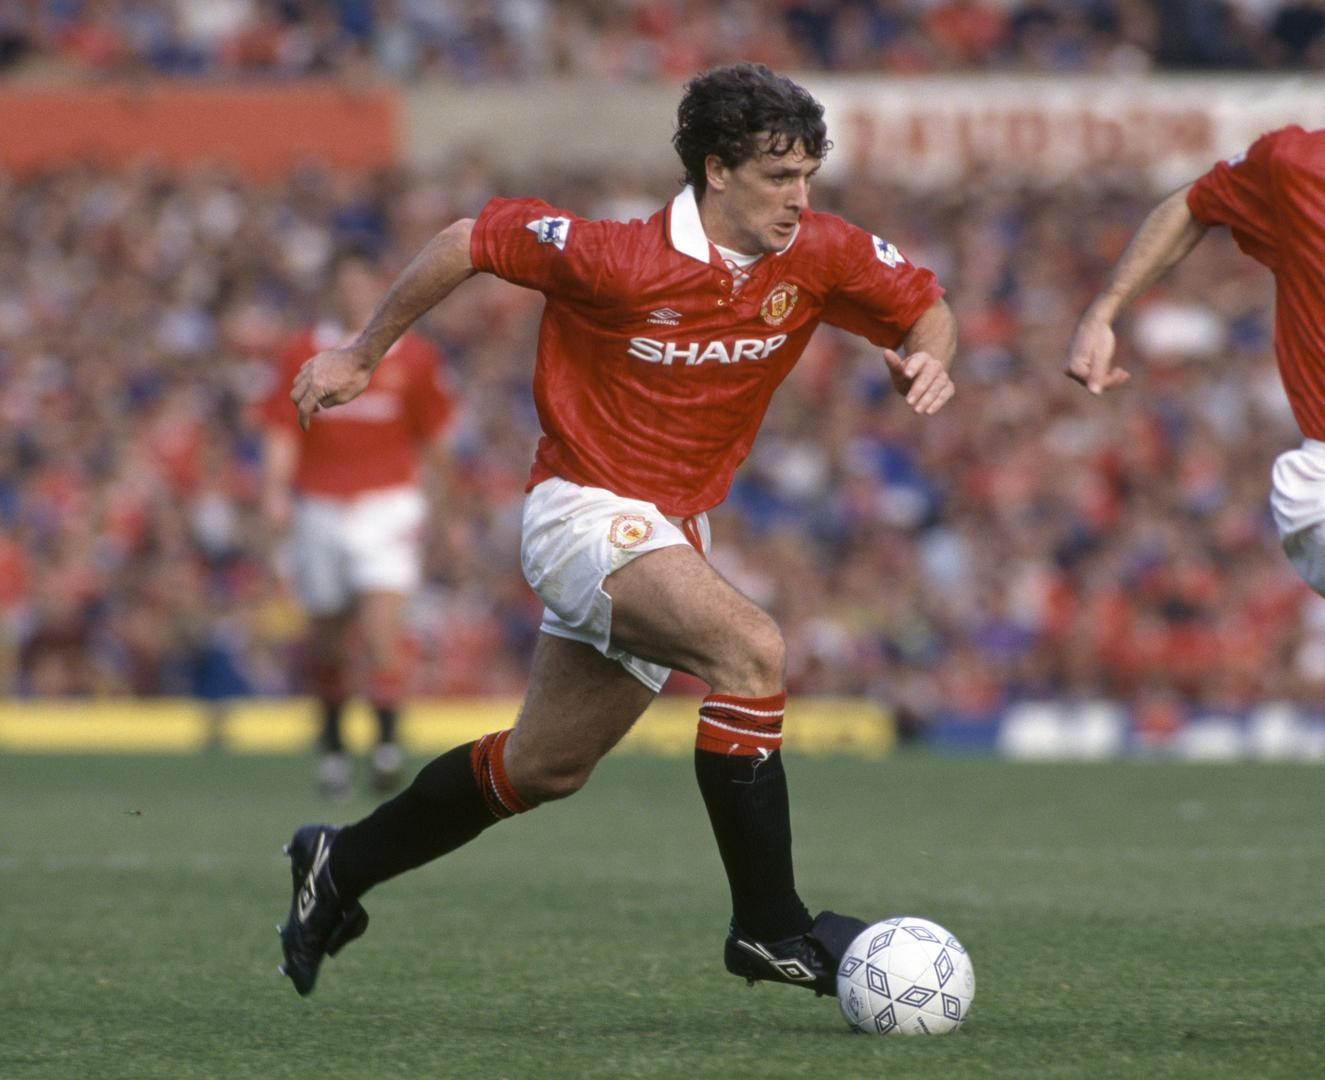 Mark Hughes playing for Manchester United